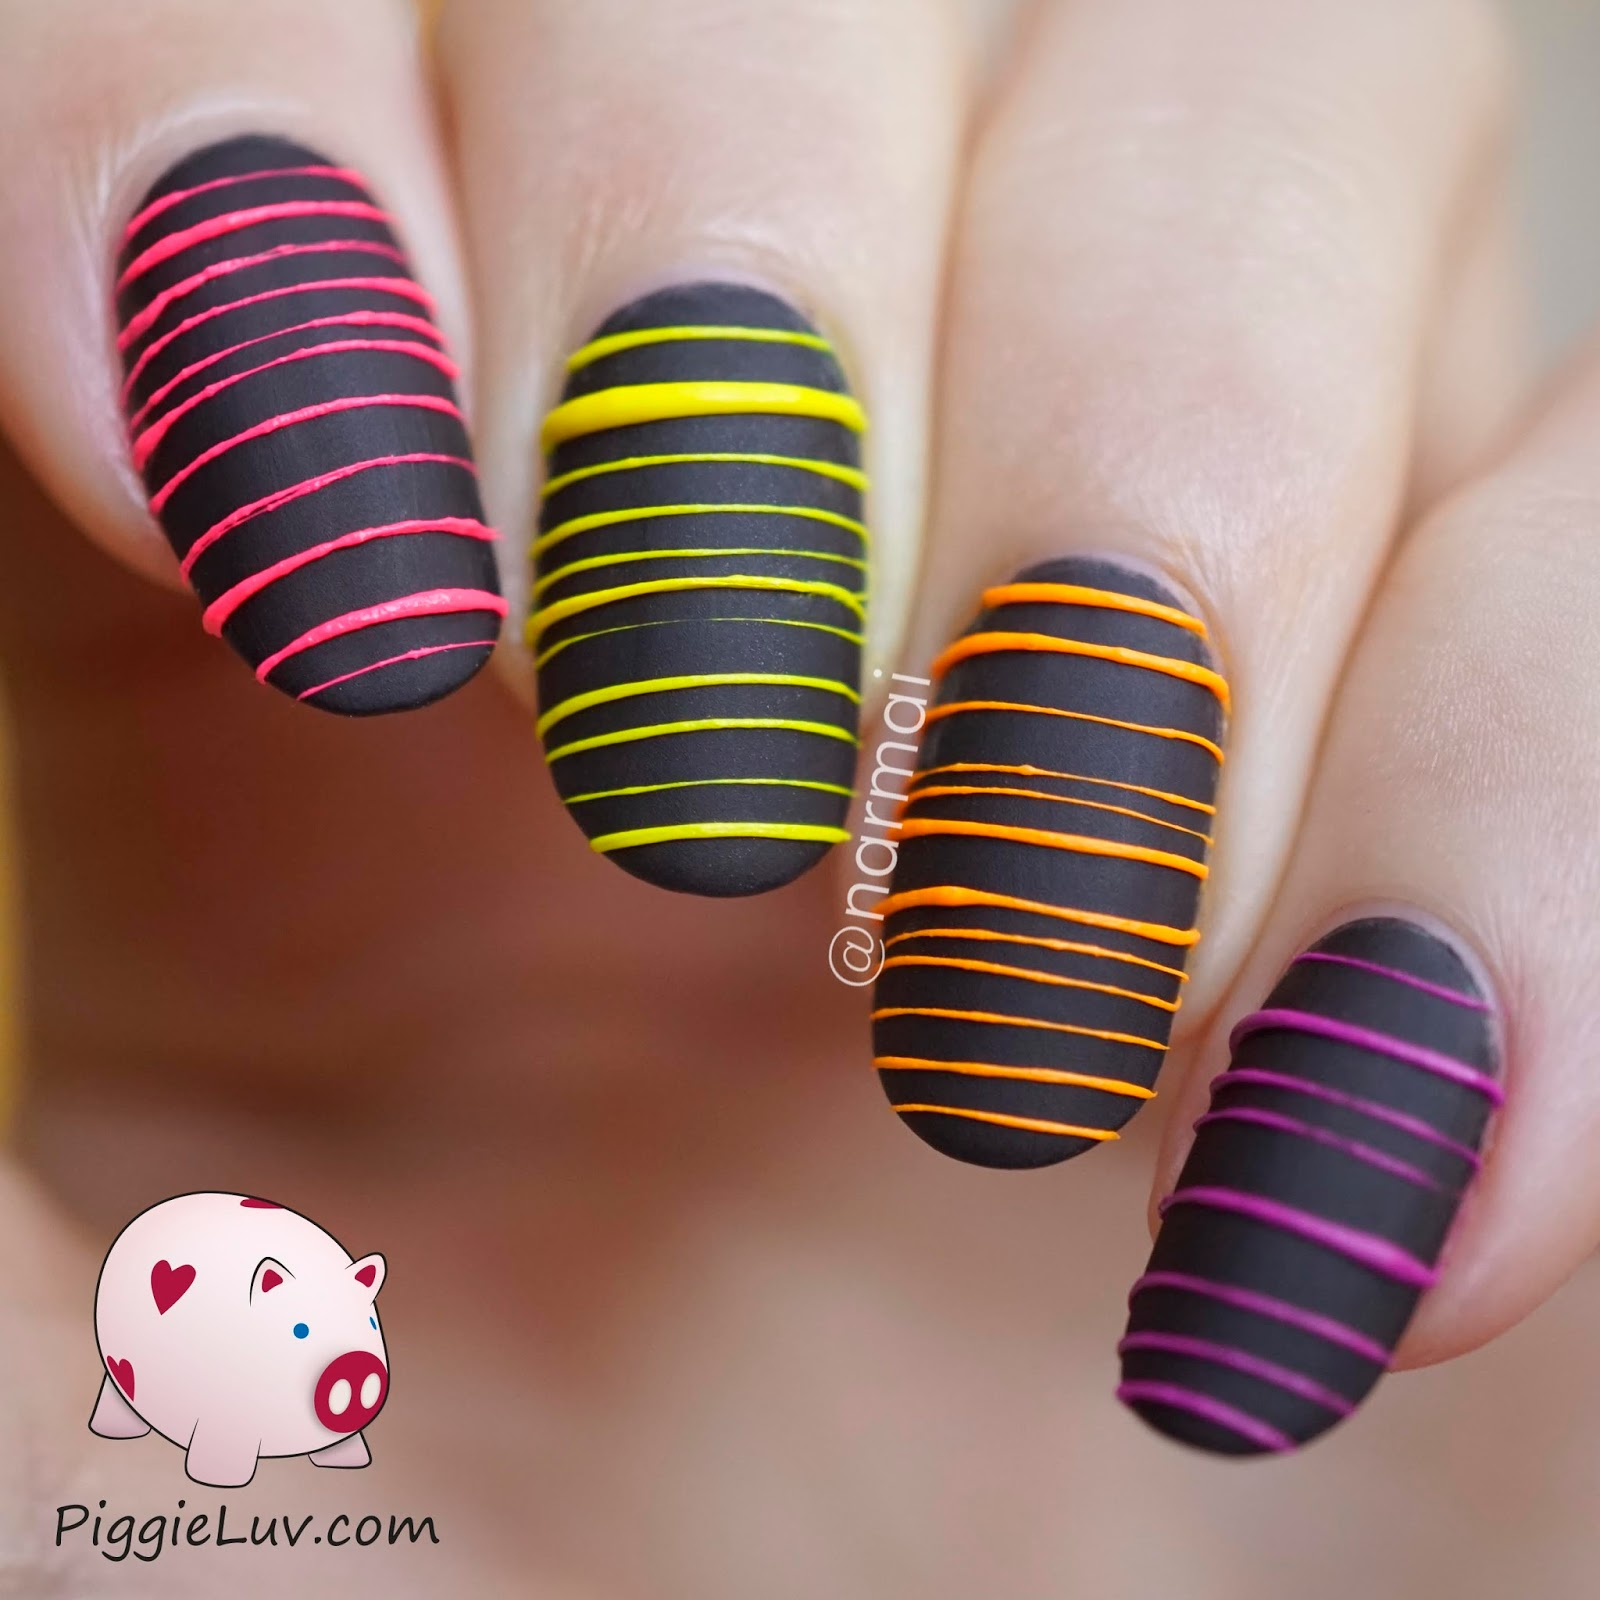 Piggieluv glow in the dark sugar spun nail art video tutorial glow in the dark sugar spun nail art video tutorial prinsesfo Image collections